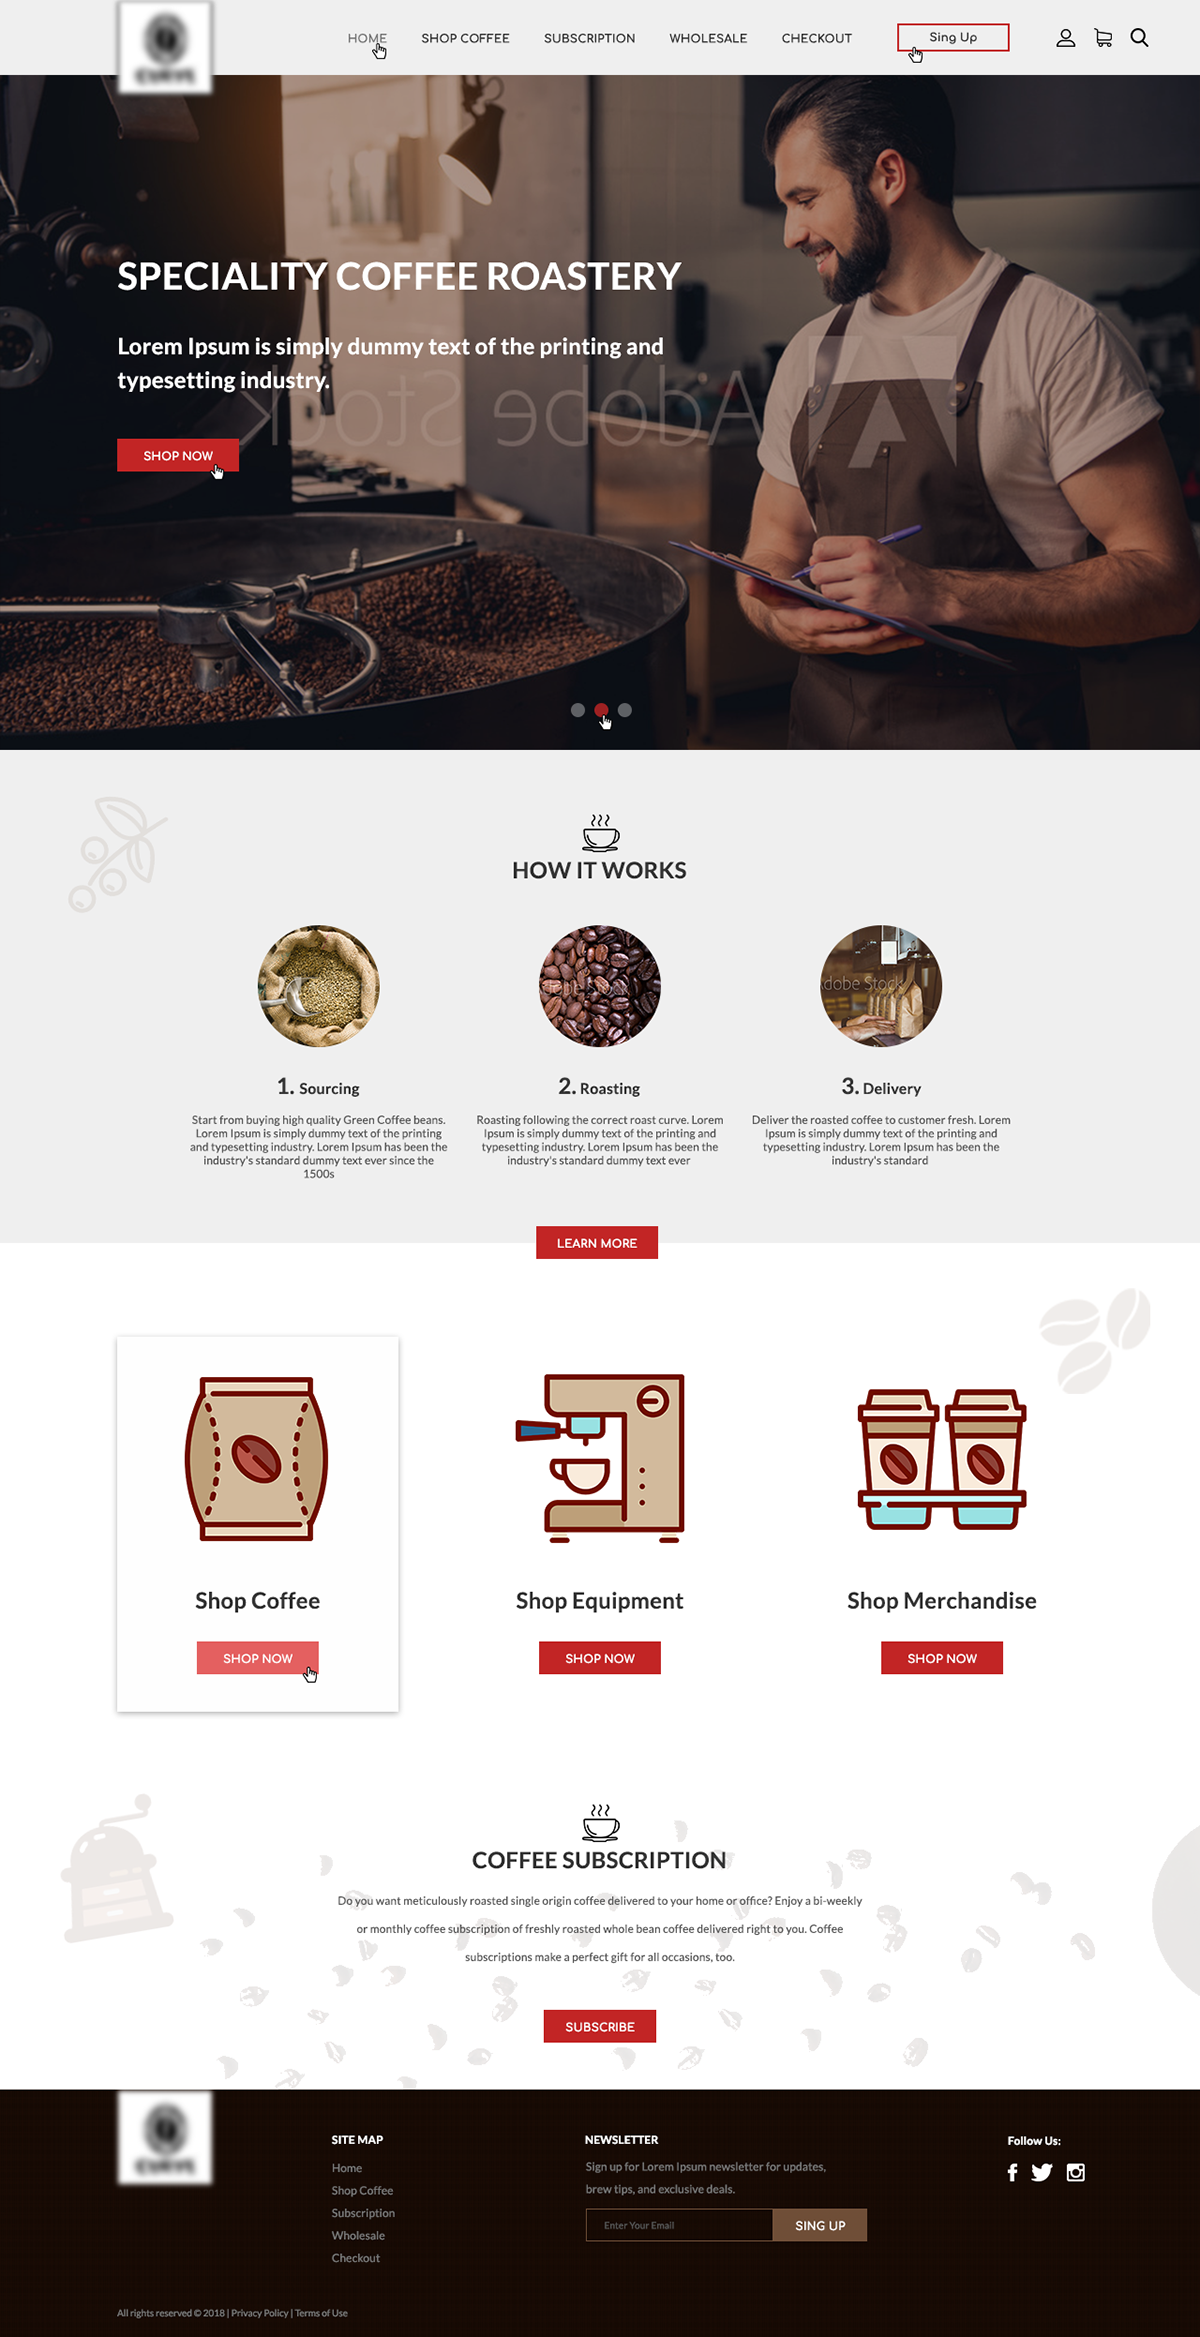 Design Web Site For Coffee Shop In 2020 Cafe Website Design Cafe Website Web Design